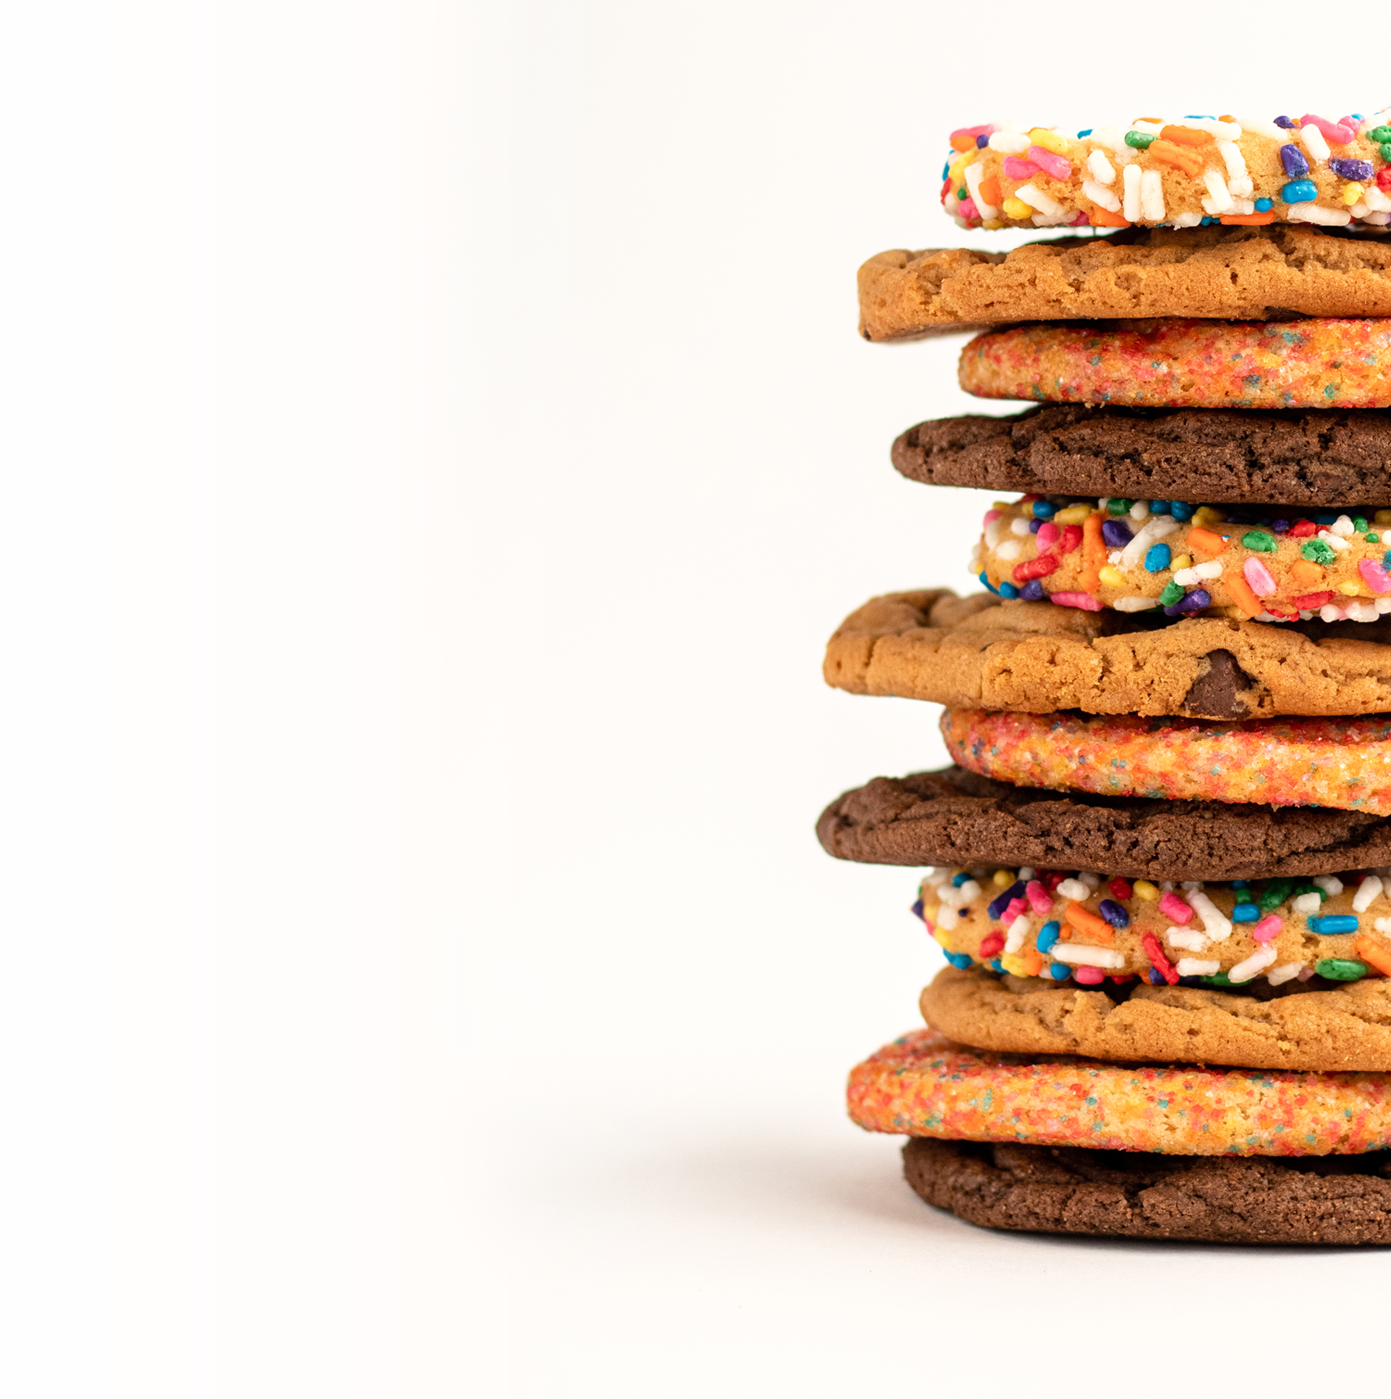 Picture of a stack of a dozen assorted cookies including birthday cake, original chocolate chip, sugar and double fudge cookies